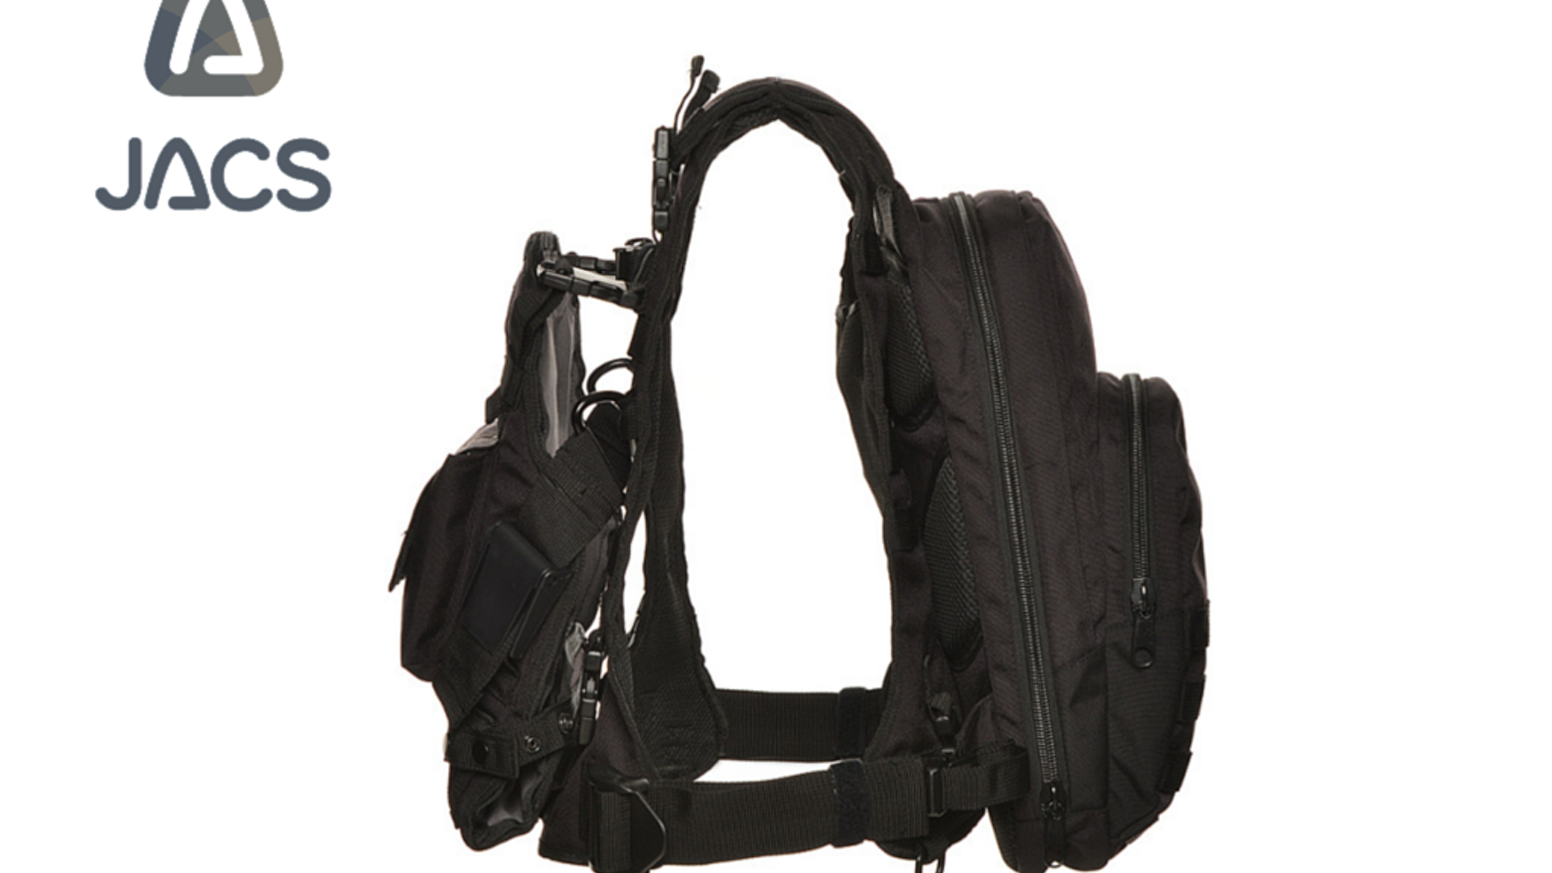 The baby carrier that does more! JACS - a versatile modular baby-carrying system designed for active parents - built for adventure.